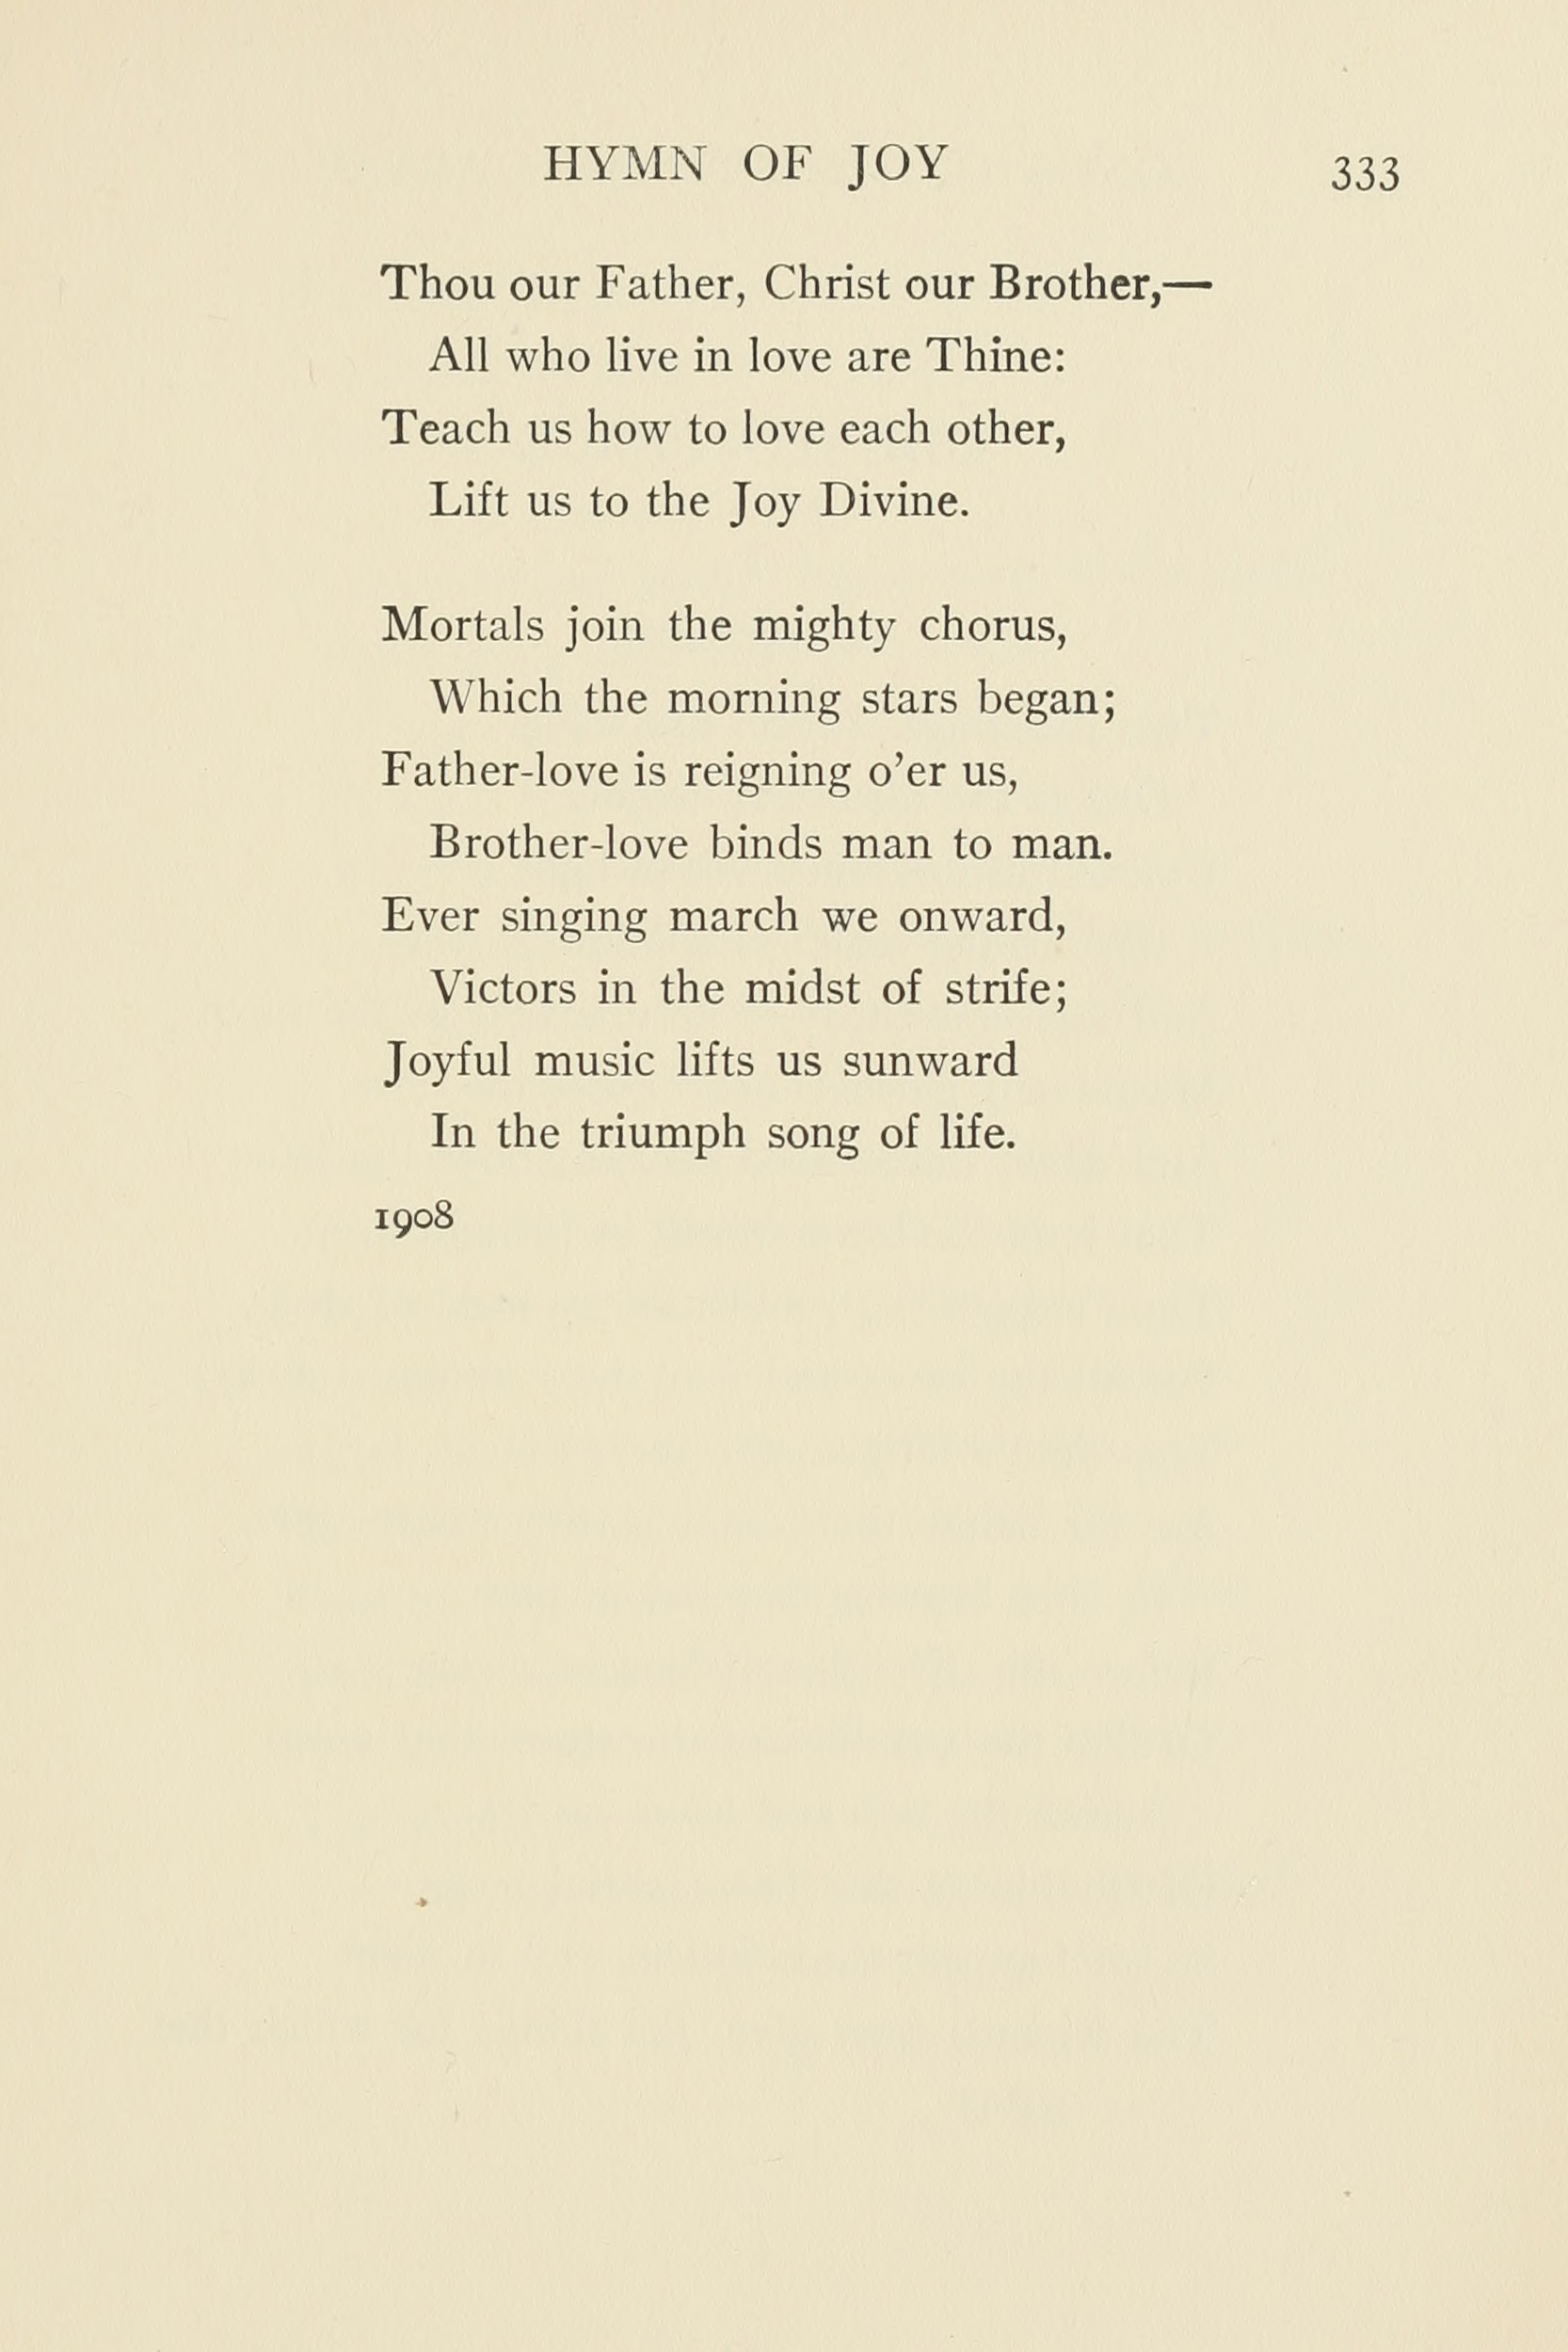 Fig. 3.   The Poems of Henry Van Dyke  (NY: Charles Scribner's Sons, 1911).